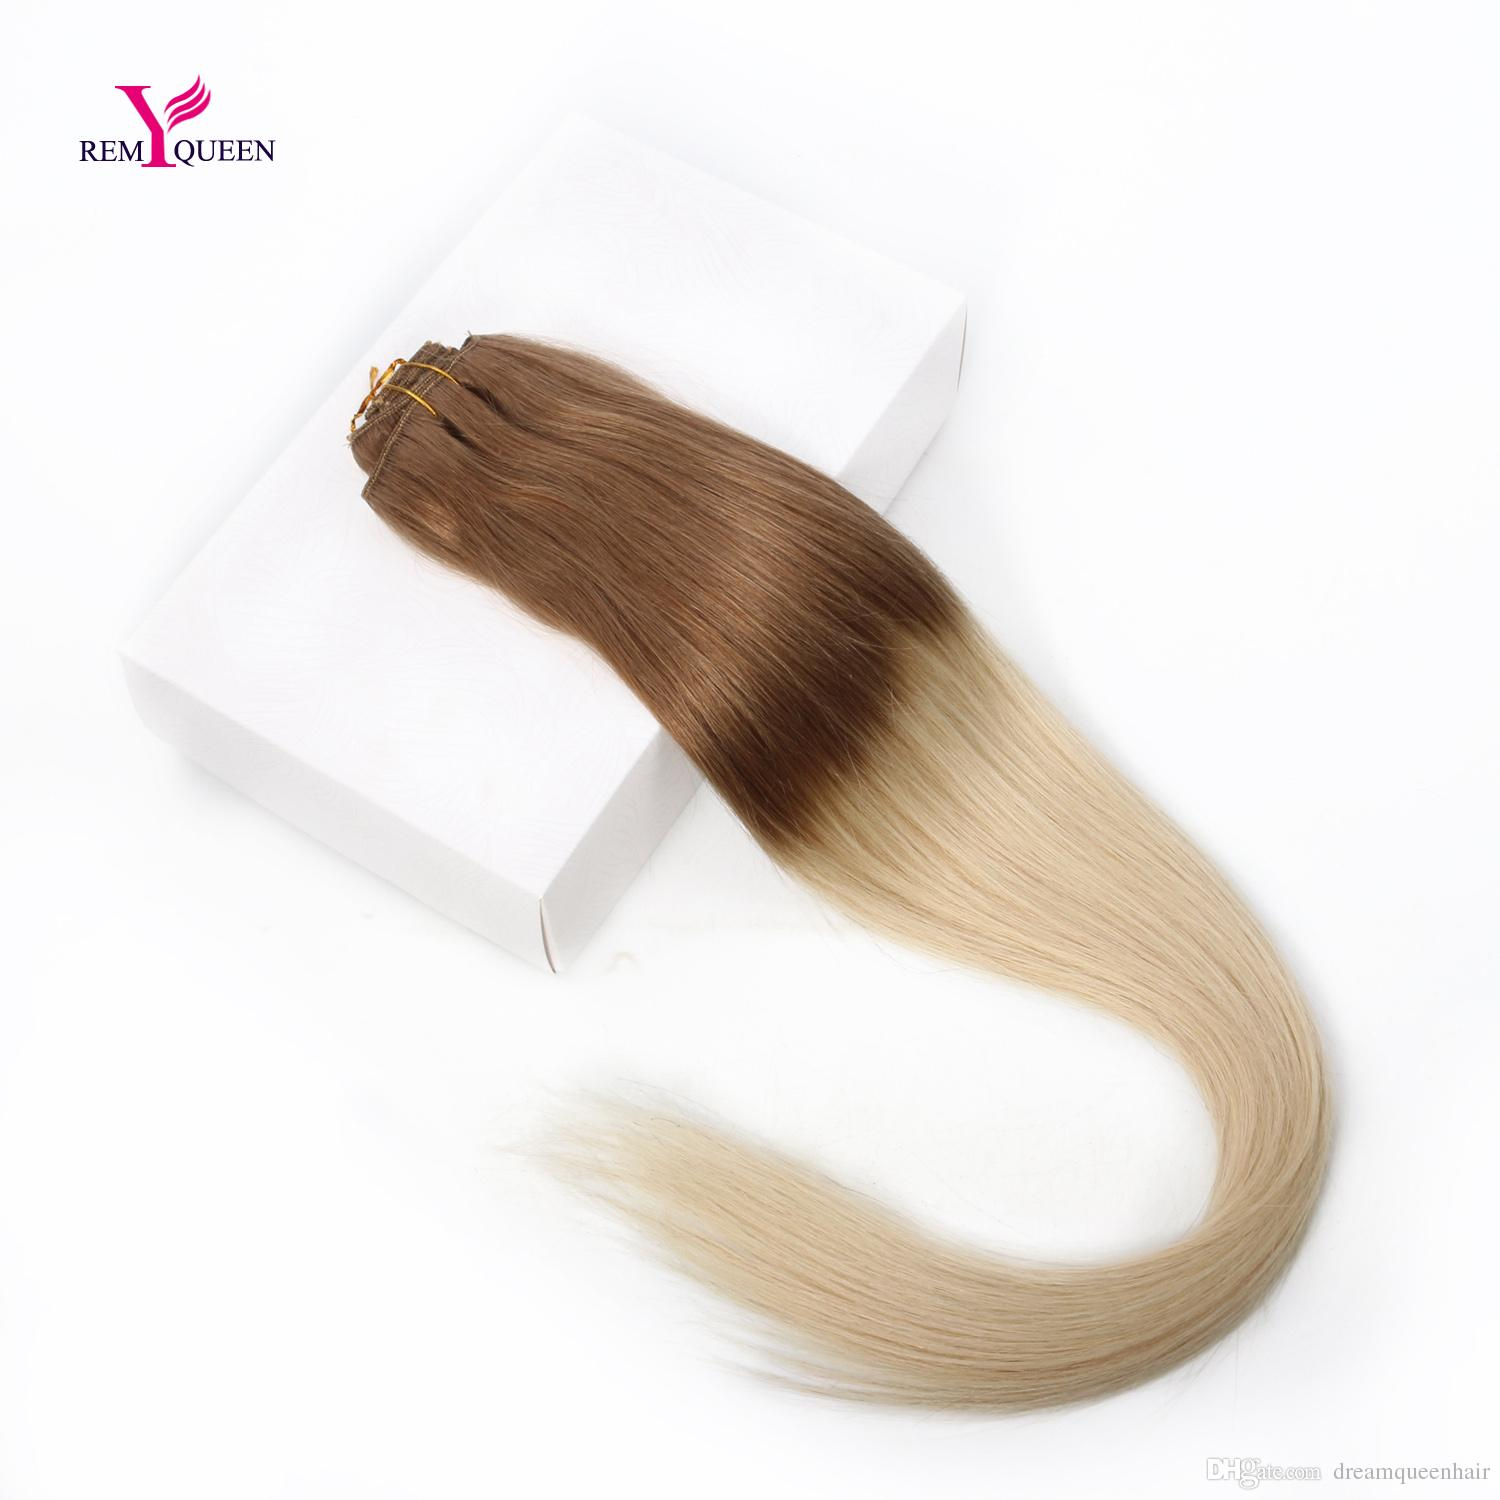 Dream Remy Queen 7A Silk Straight Remy Hair Clip In Human Hair Extensions Ombre Color T6/613 Full Head